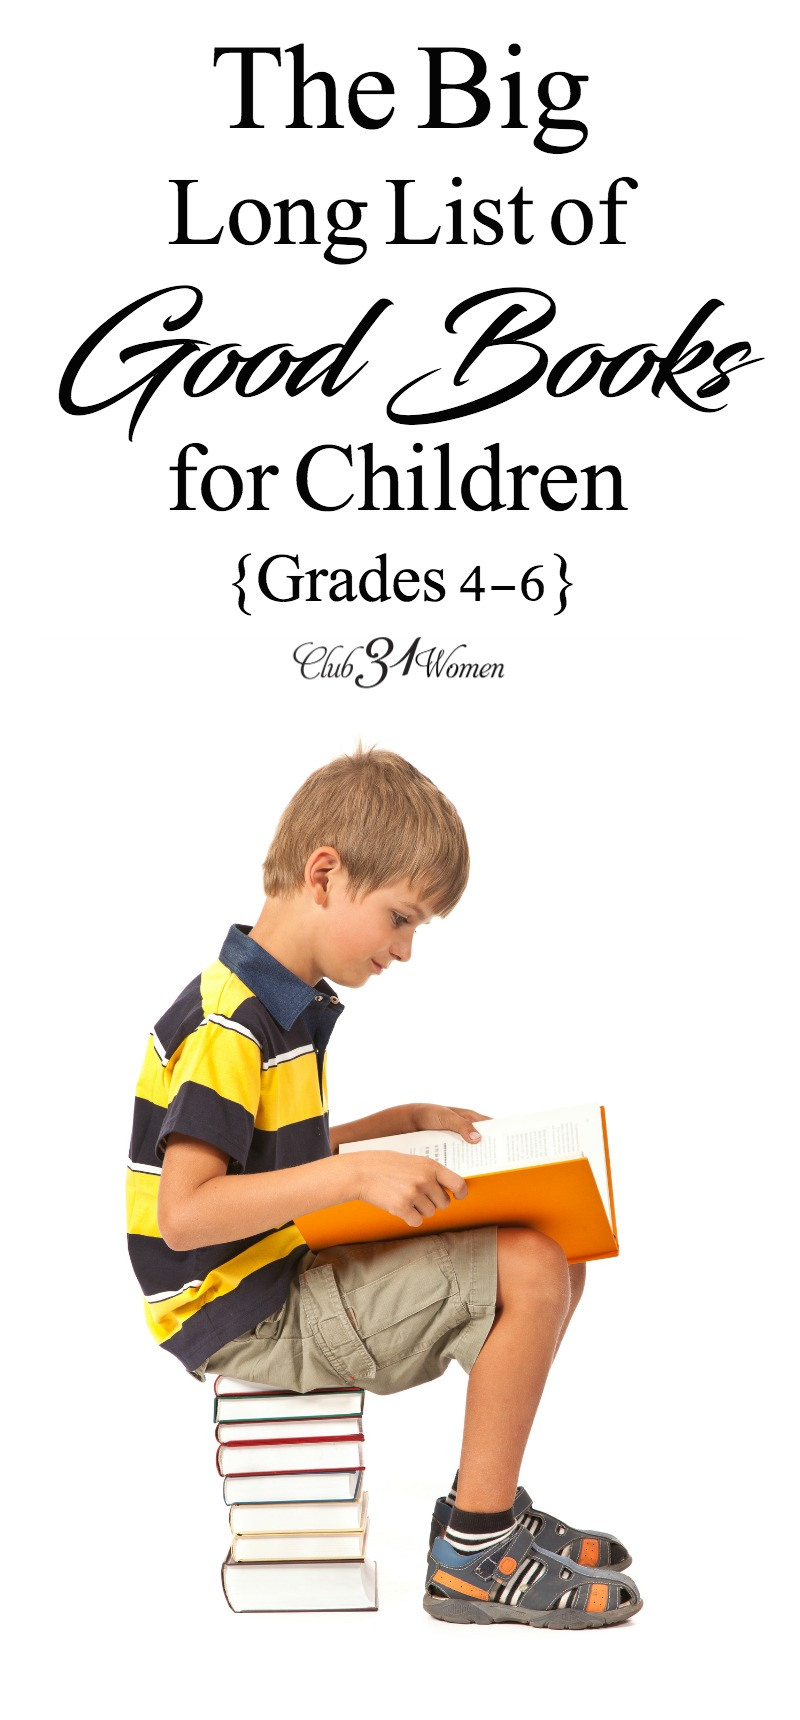 If you have a child who can't get enough good books to read, this is a Big Long List of Good Books for Children just for you! via @Club31Women